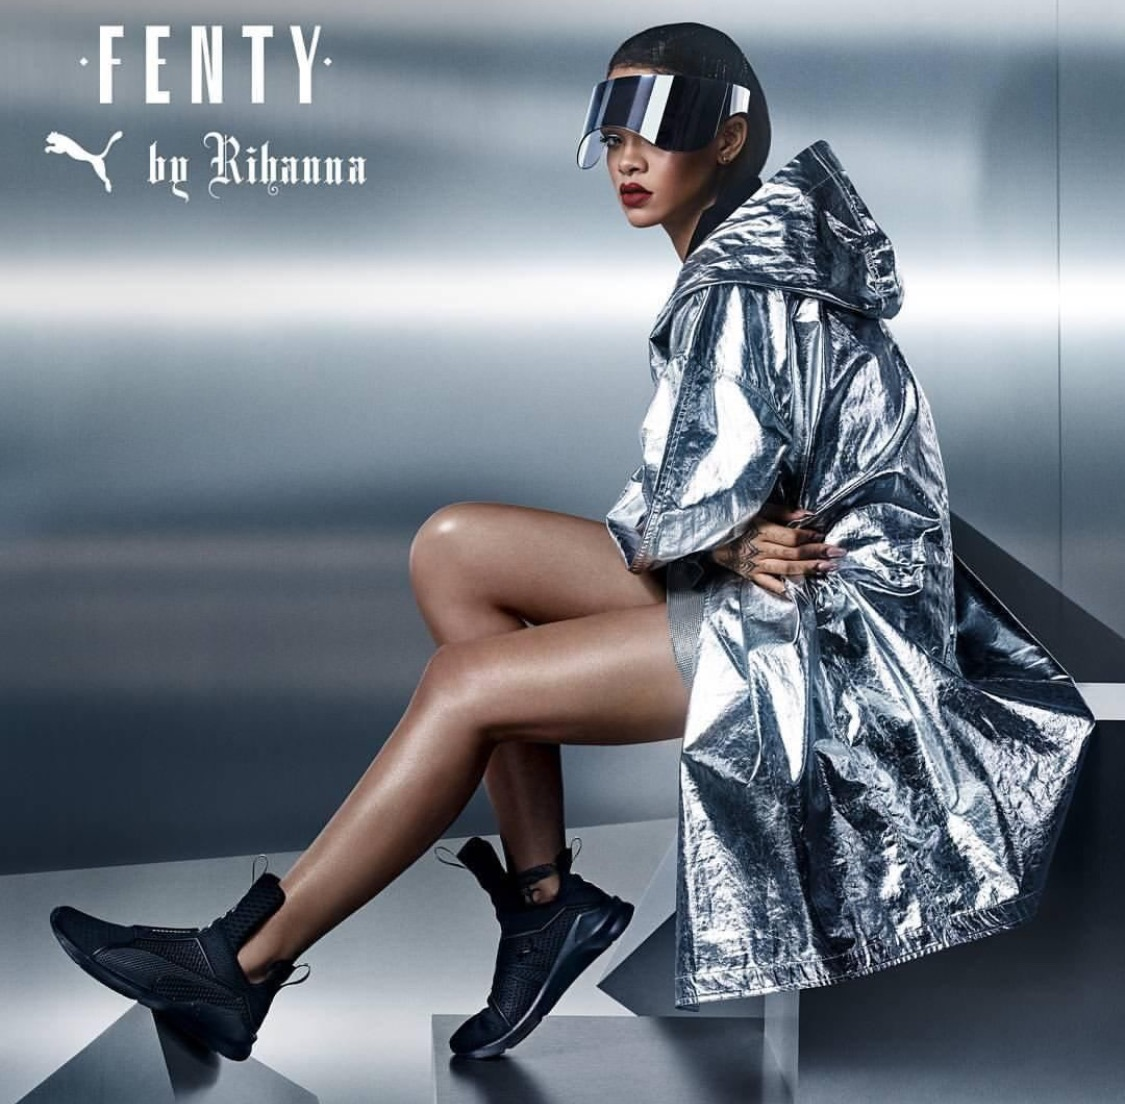 Rihanna Launches New Fenty x Puma Sneaker